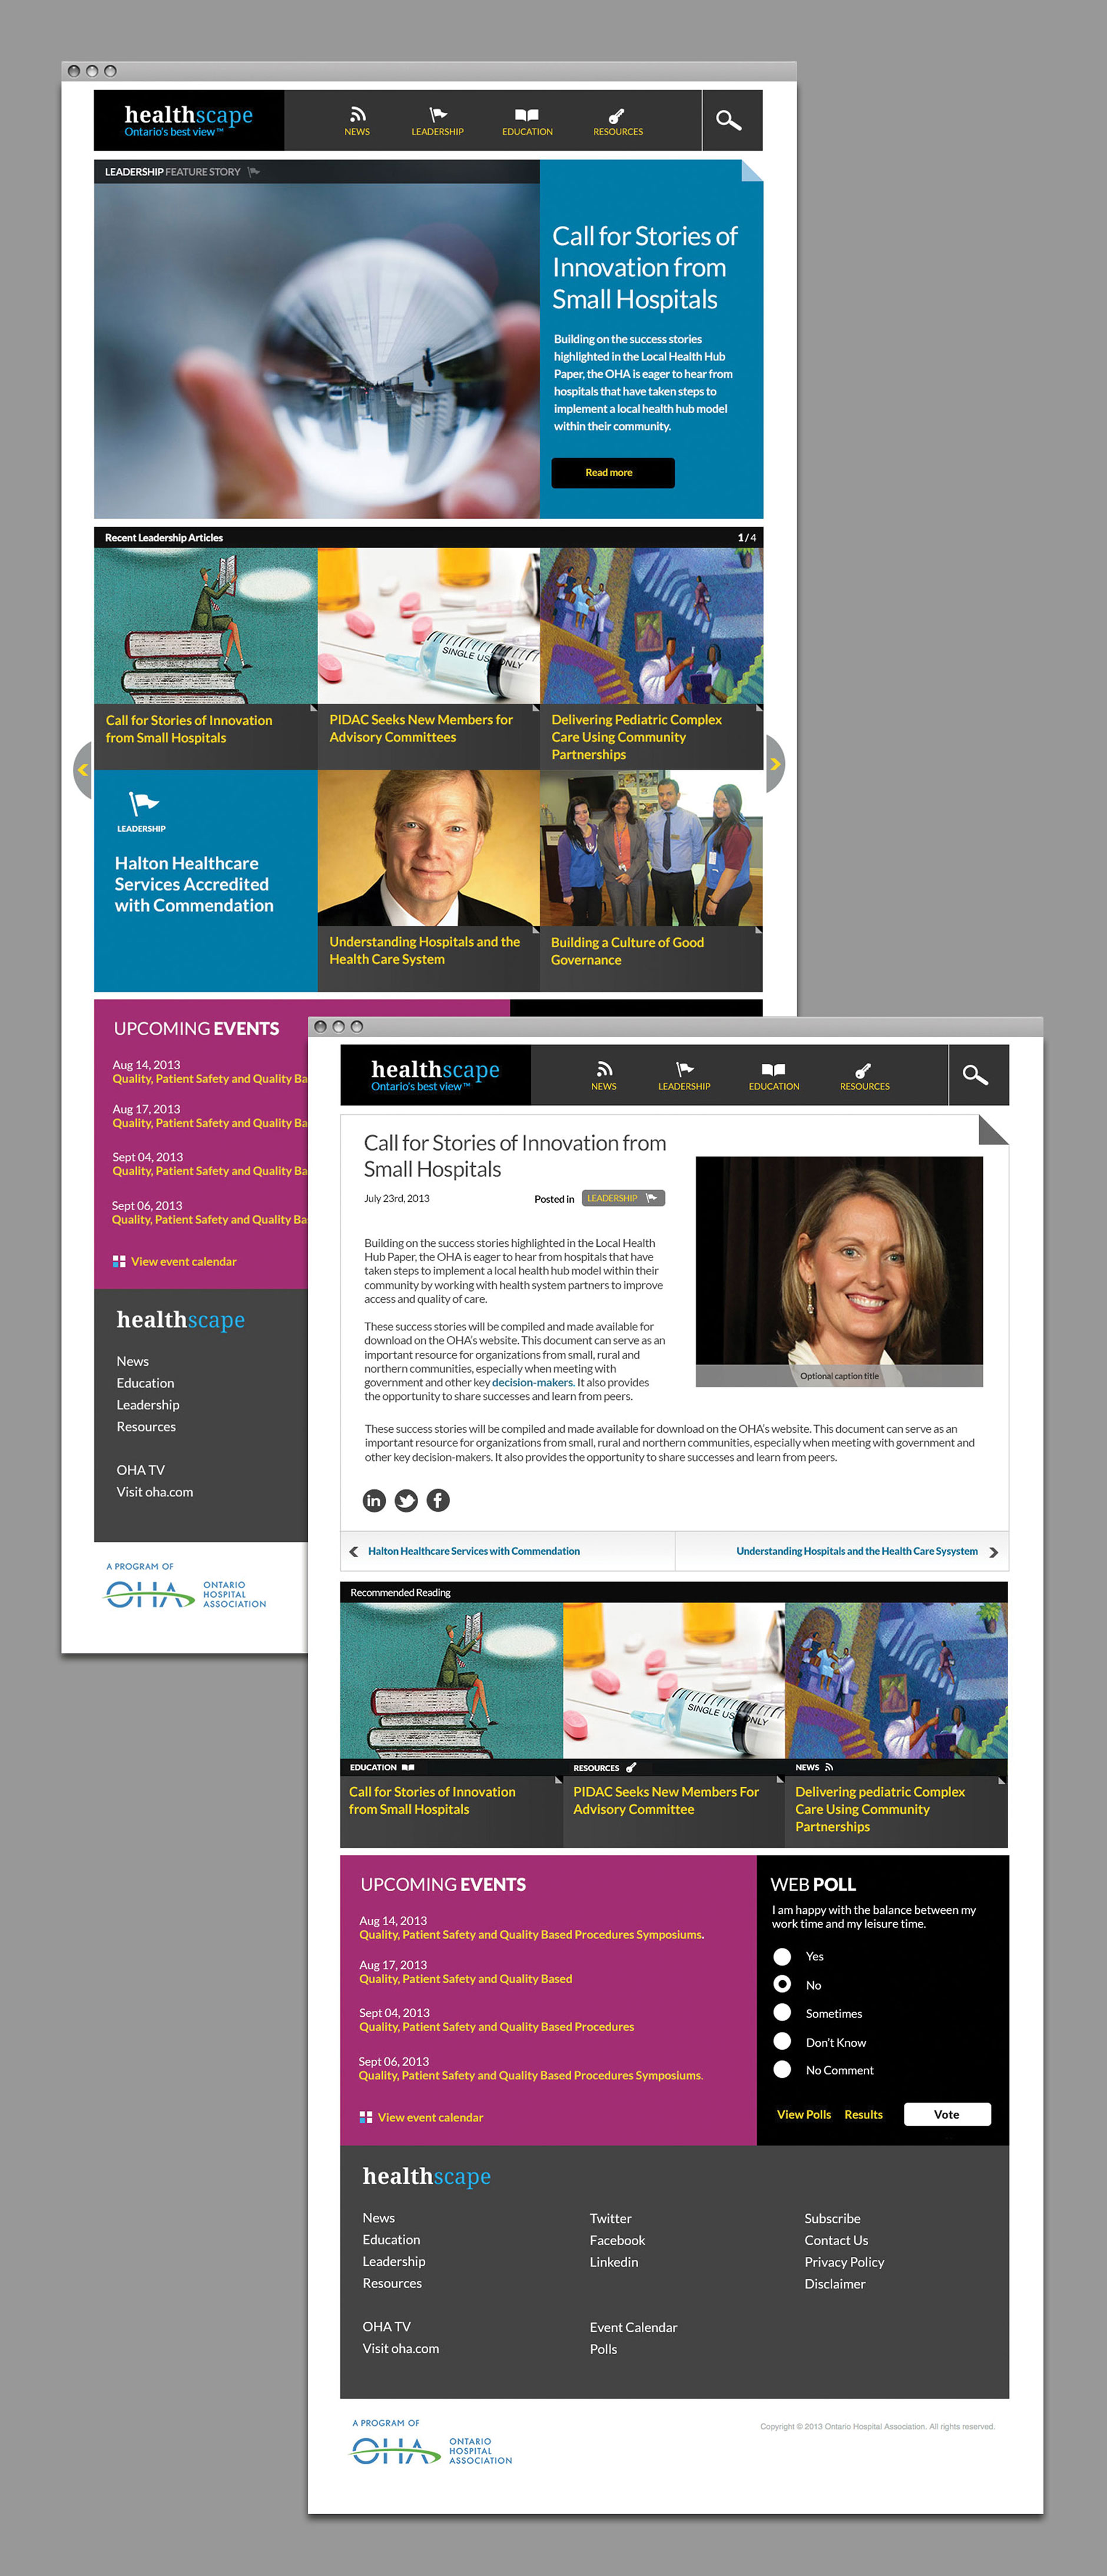 HealthAchieve website pages